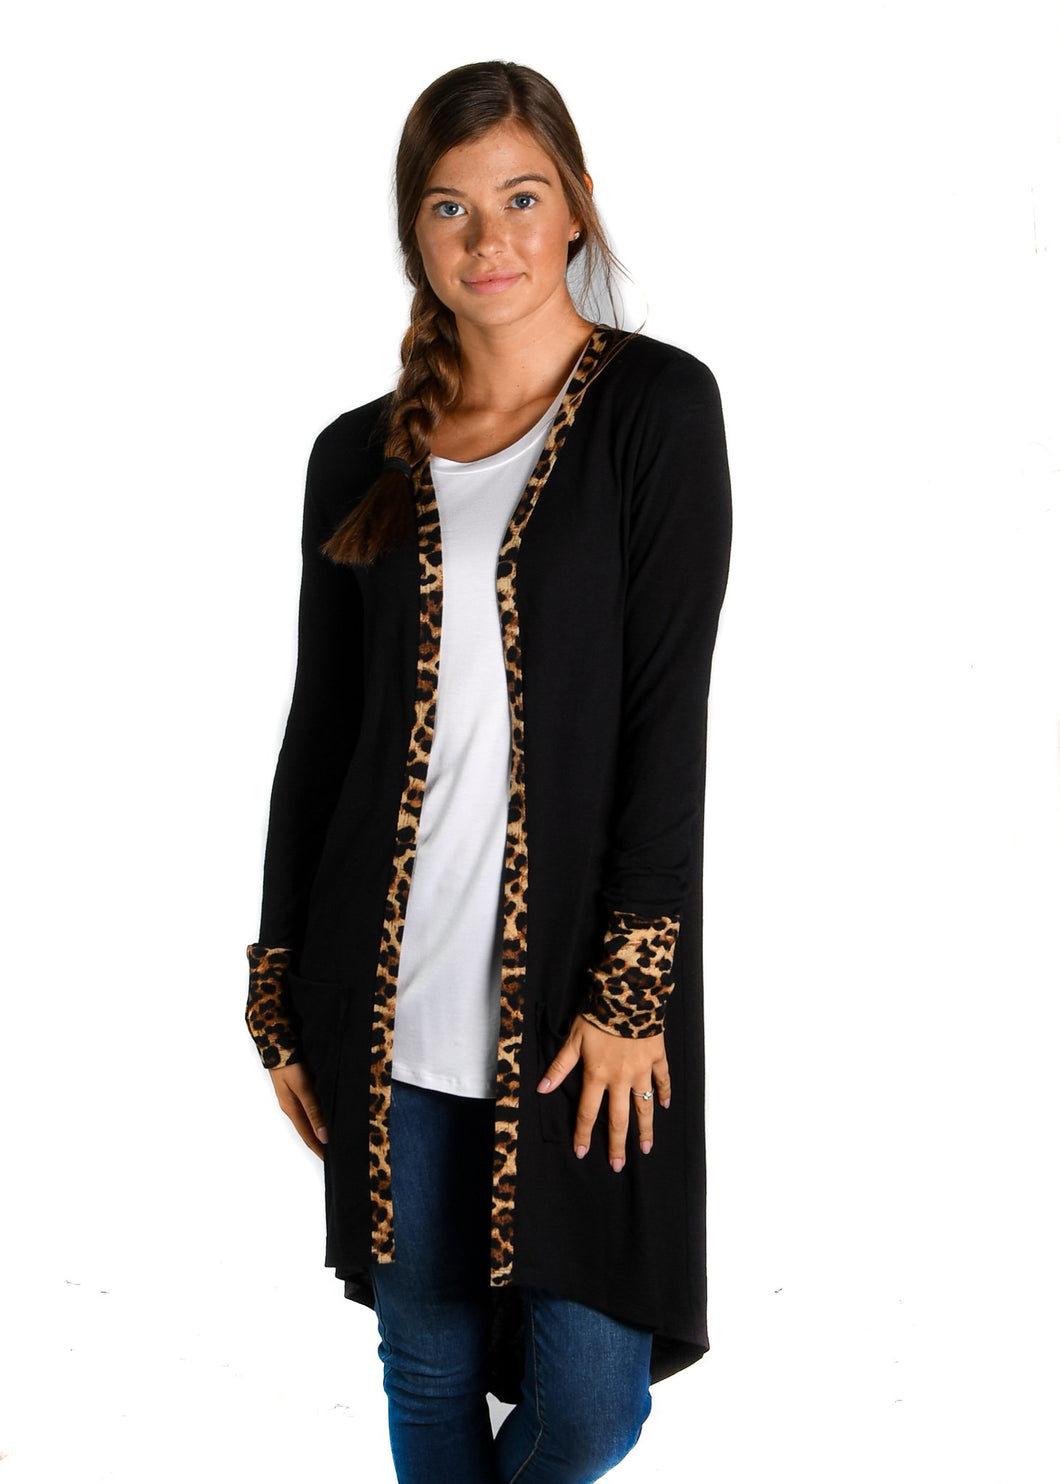 Black with Leopard Favorite Cardigan - Up to XXXL